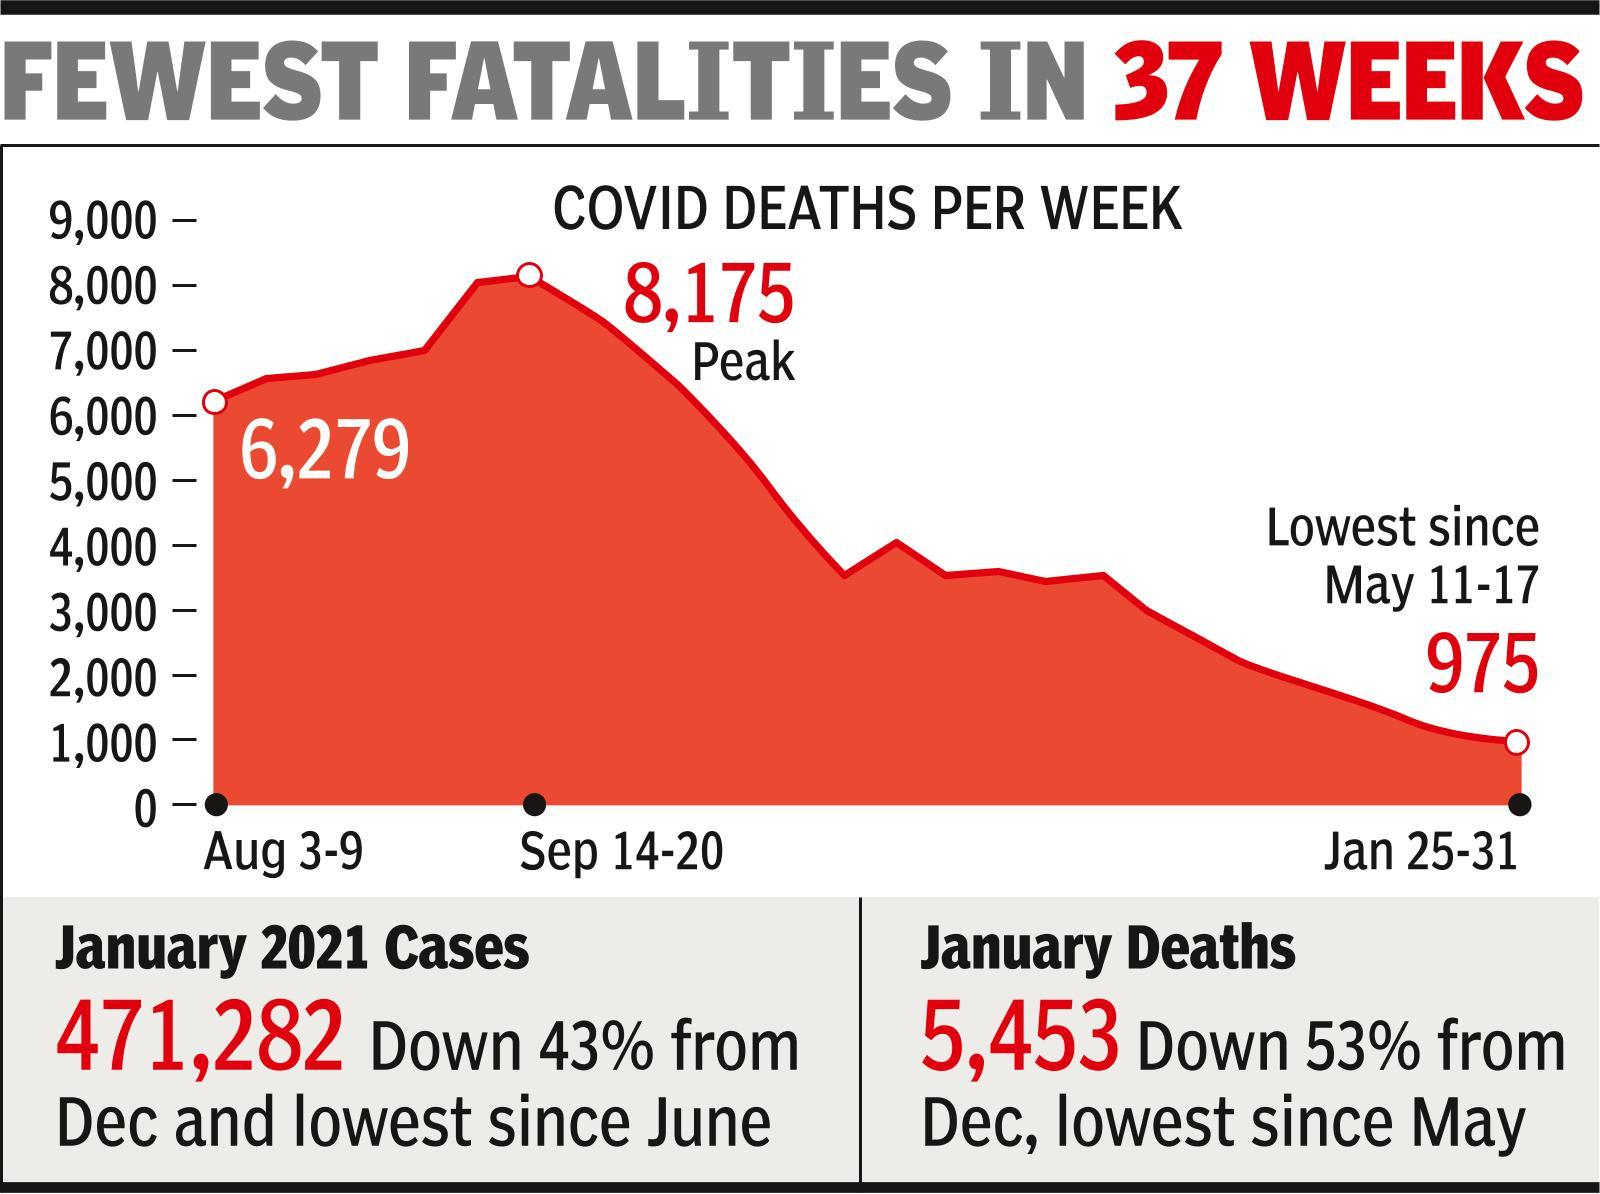 Weekly Covid casualties fall below 1,000, lowest since May